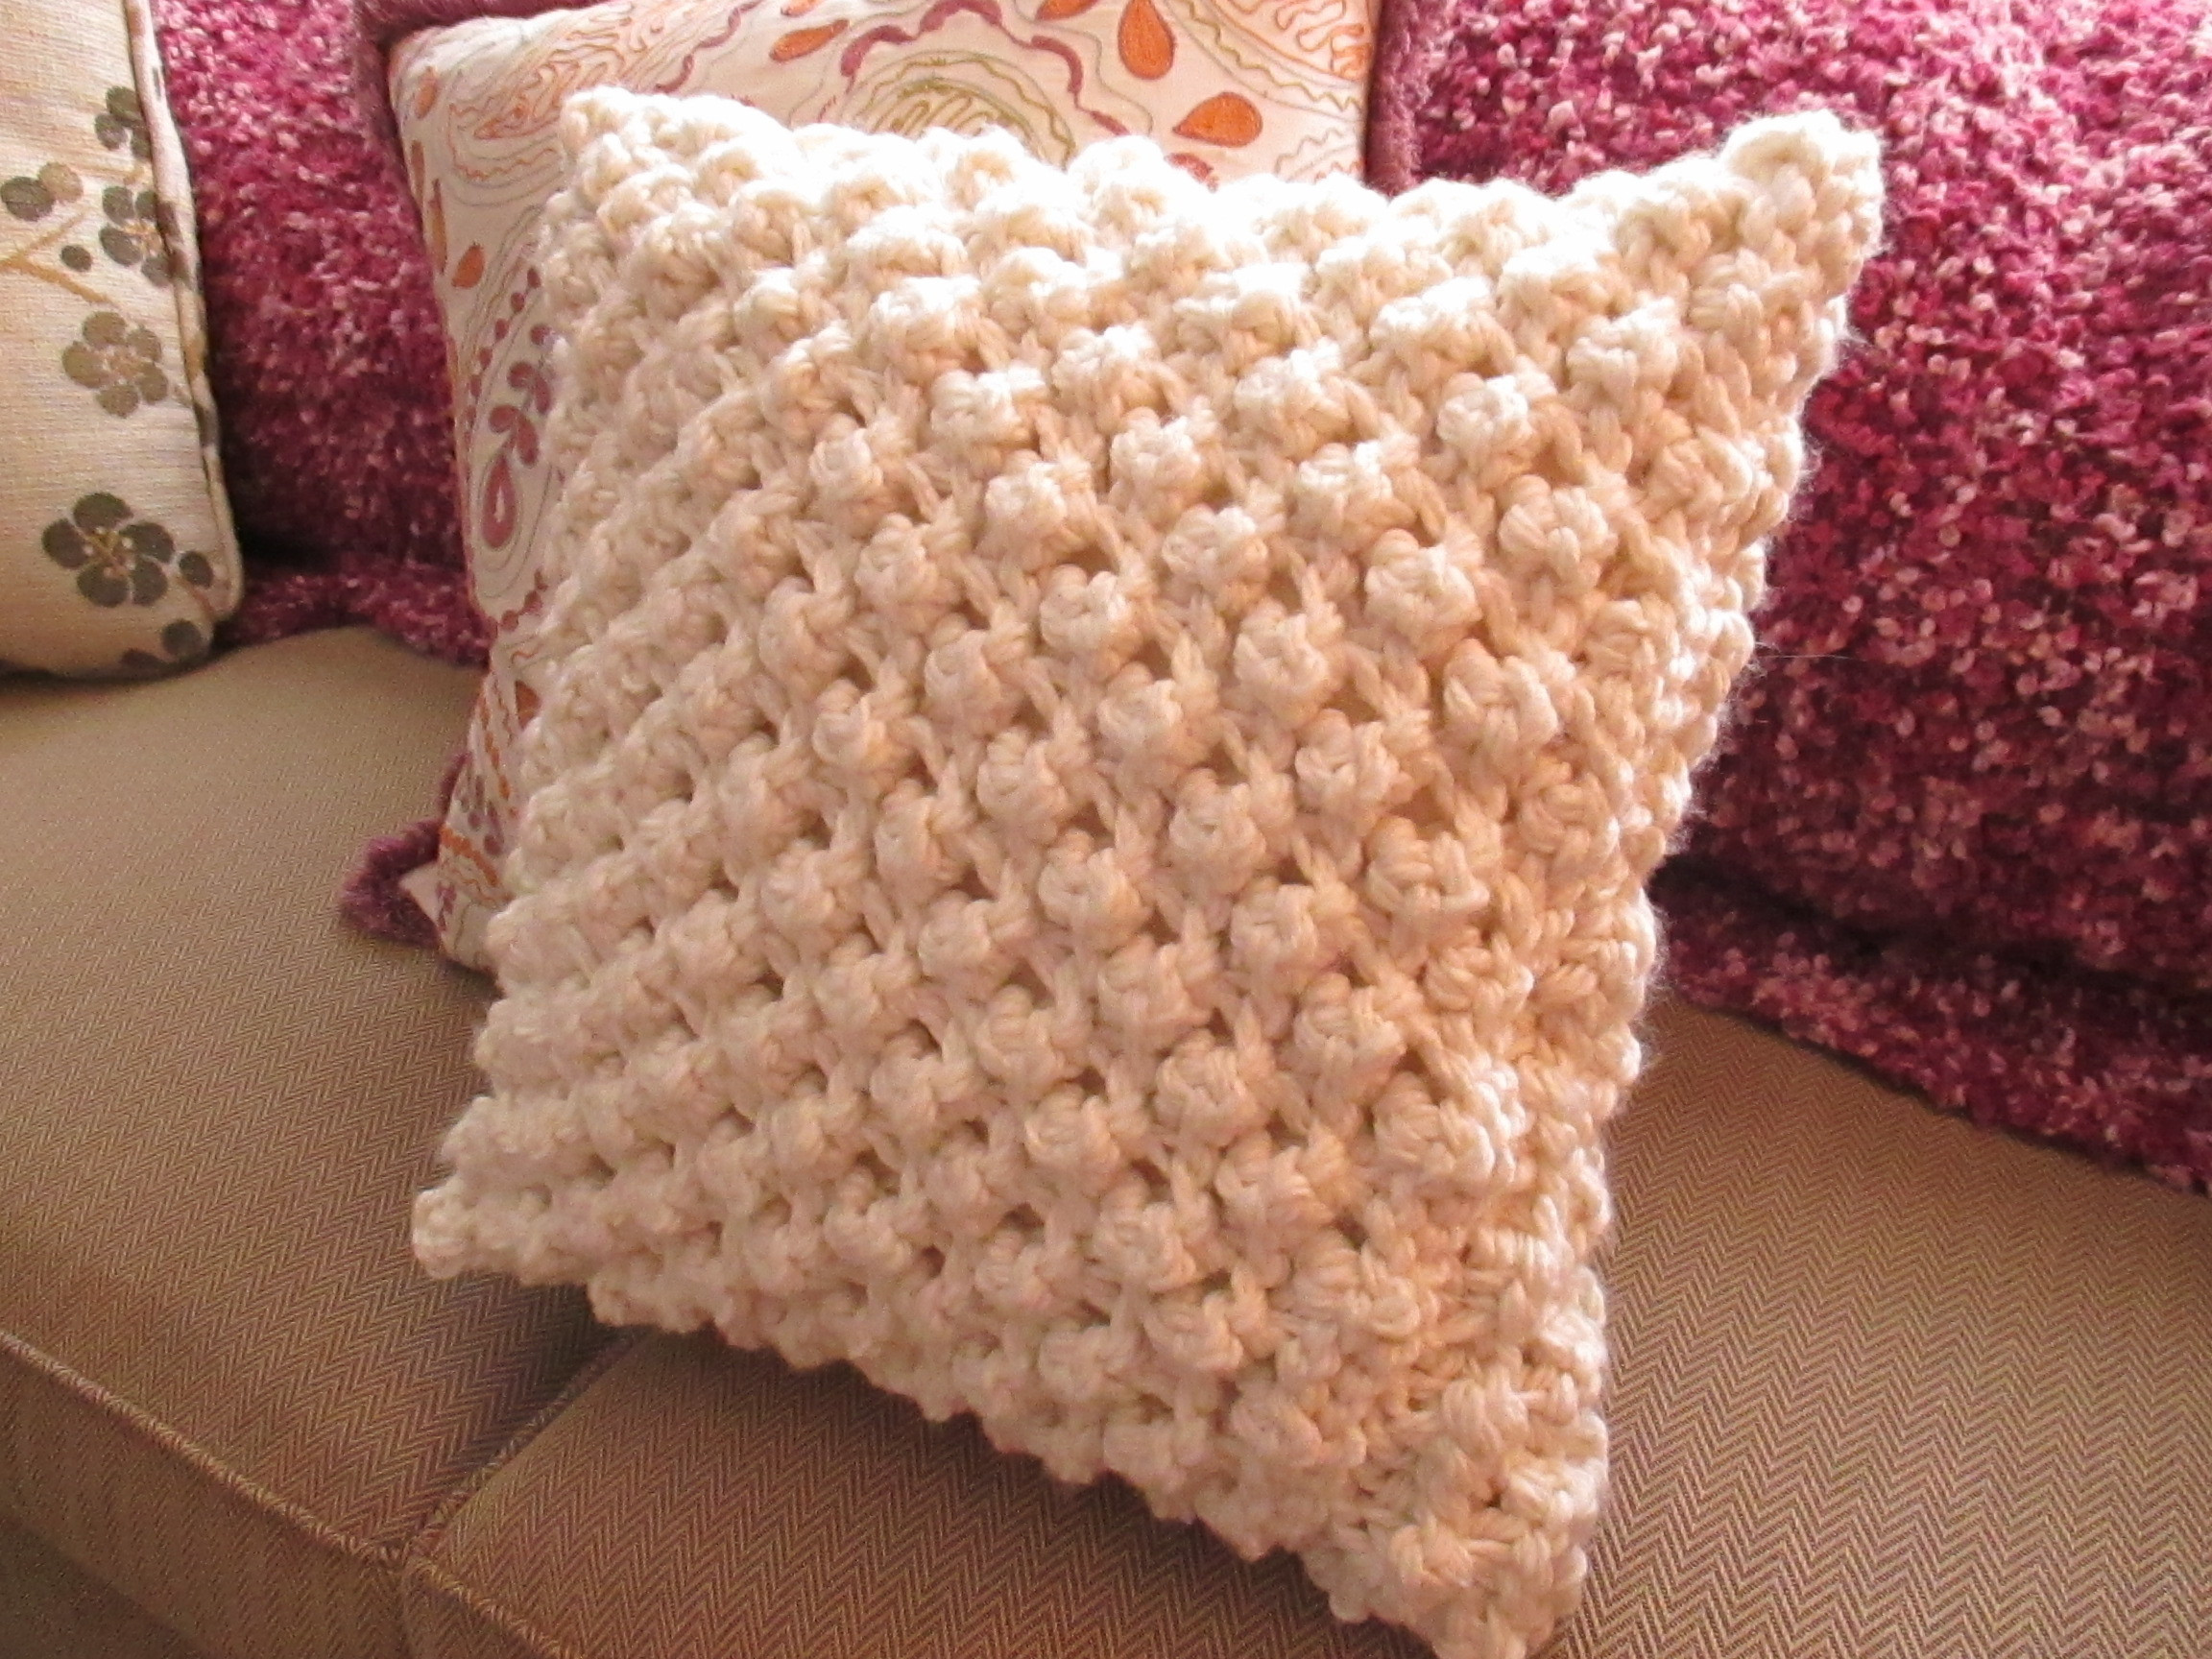 Inspirational Popcorn Knit Pillow Cover · How to Stitch A Knit Crochet Pillow Covers Of Incredible 47 Pics Crochet Pillow Covers